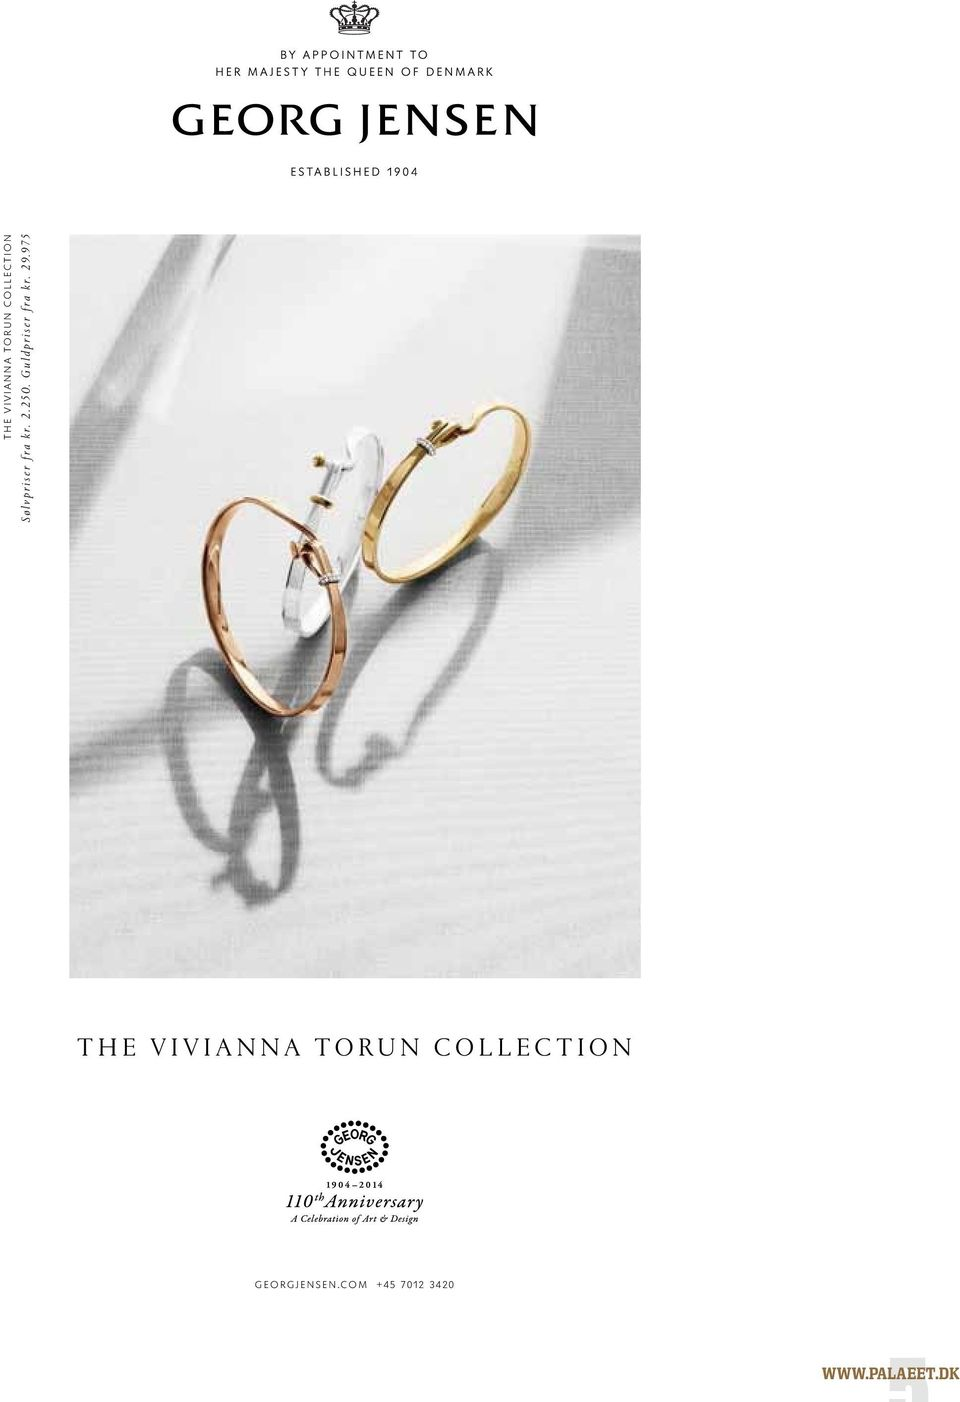 975 THE VIVIANNA TORUN COLLECTION GEORGJENSEN.